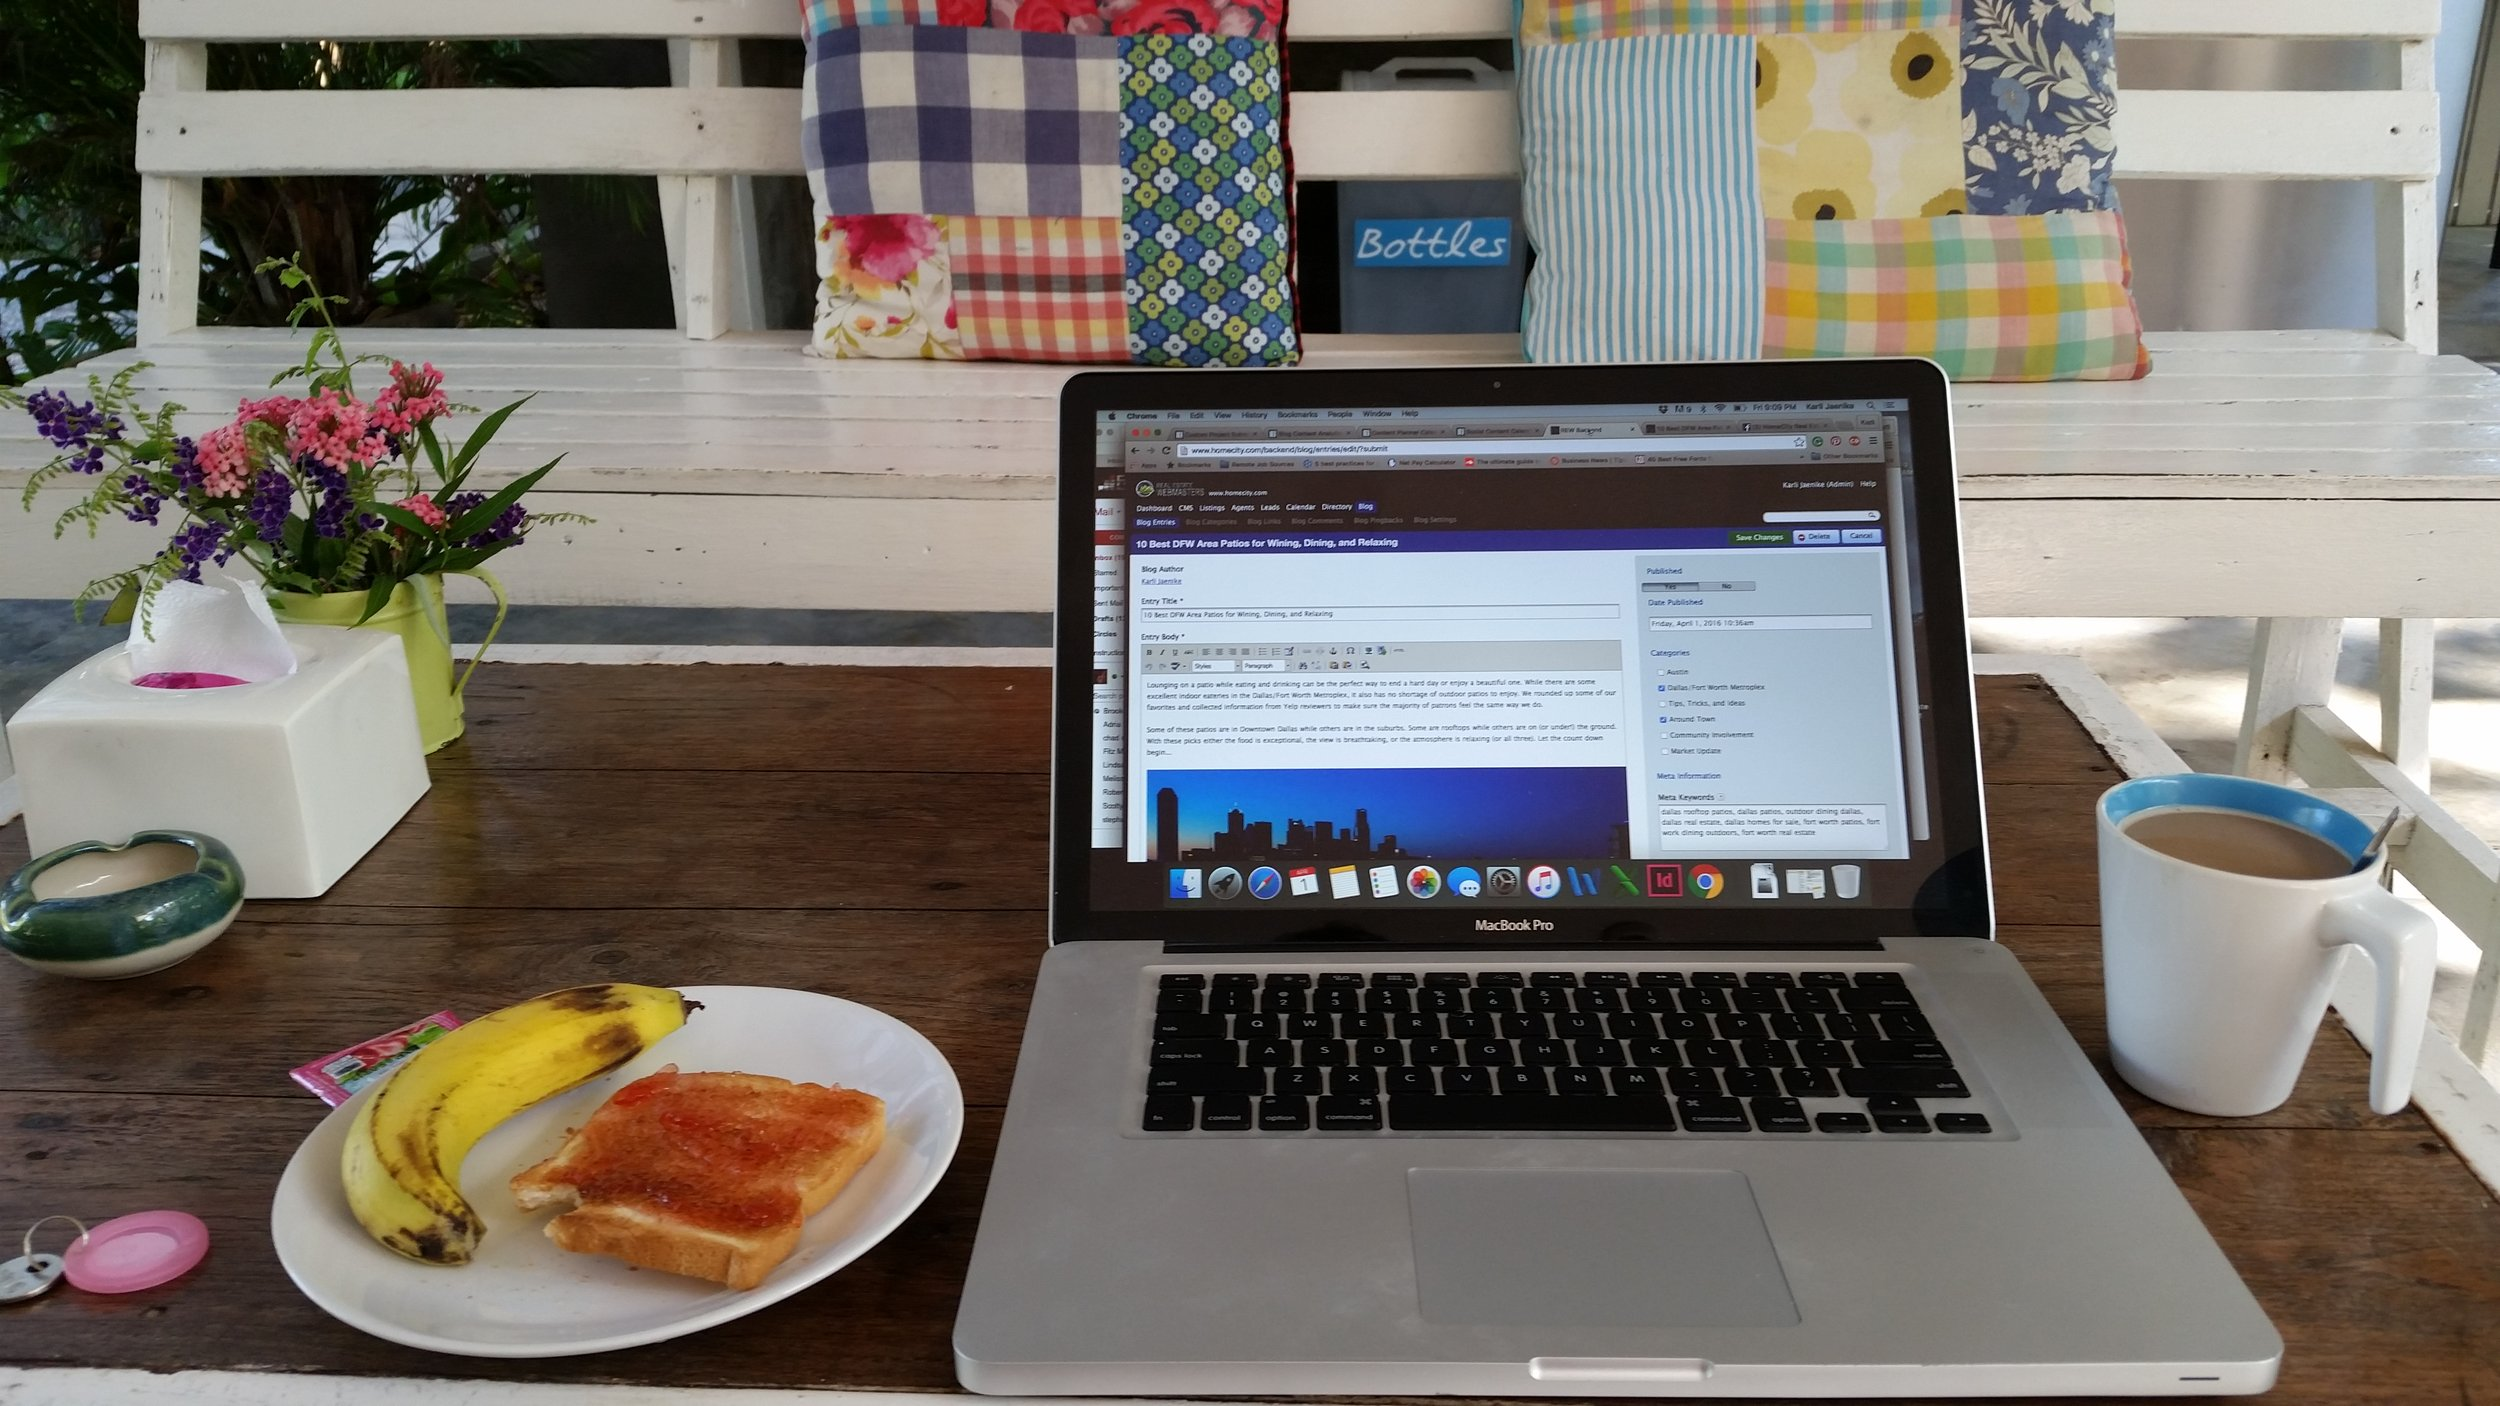 My working setup at Glur Hostel. The perfect place to relax!